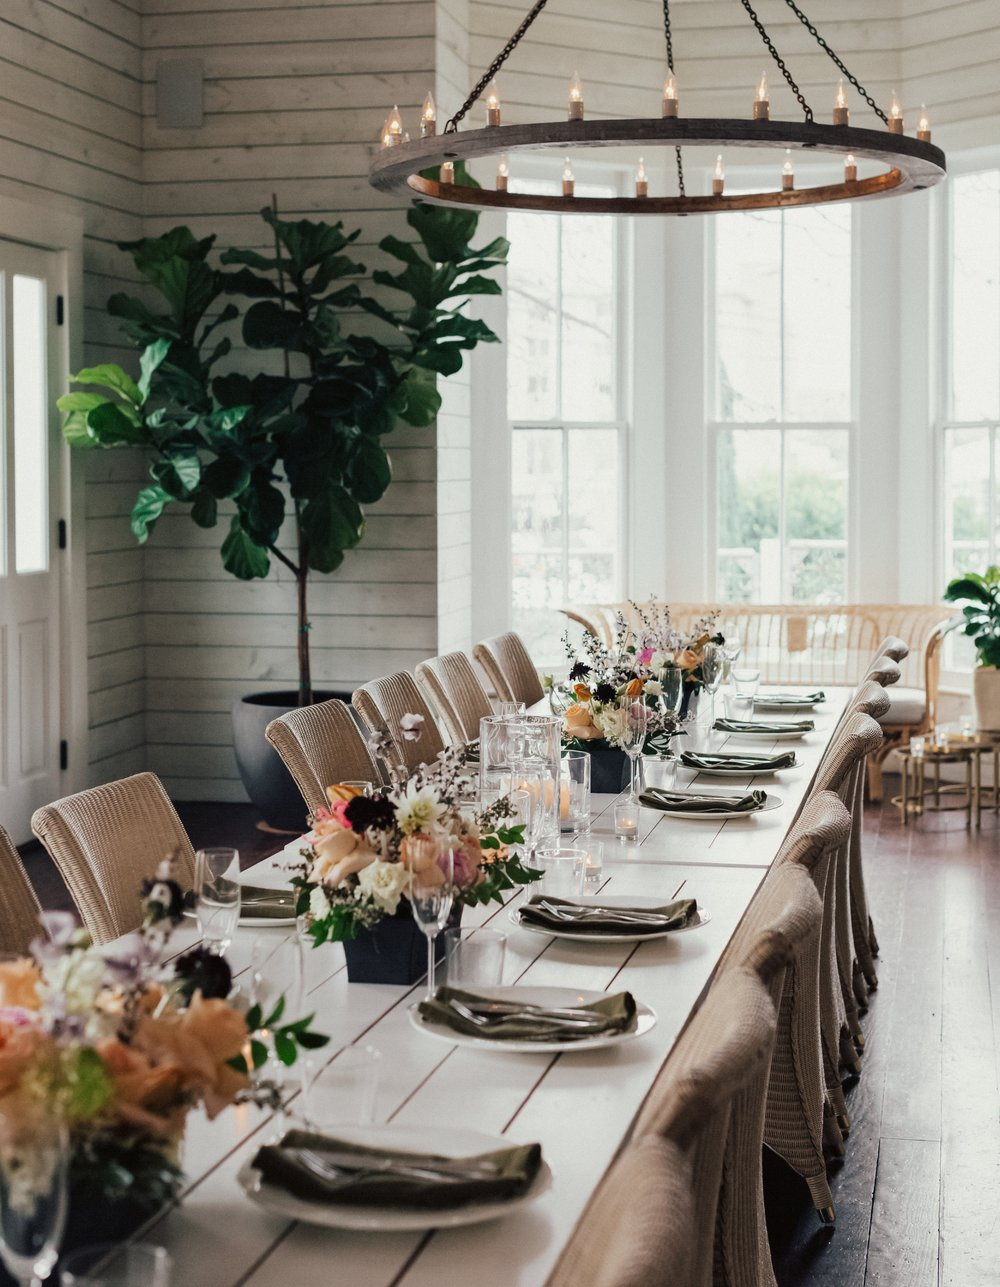 Event Centerpieces - All-sided urn or vessel arrangements, in Earl Grey's lush style, and designed to your color palette. Starting at $70.00. Photo: Leeann Funk Photography.Venue pictured: Thompson + Hanson Garden House